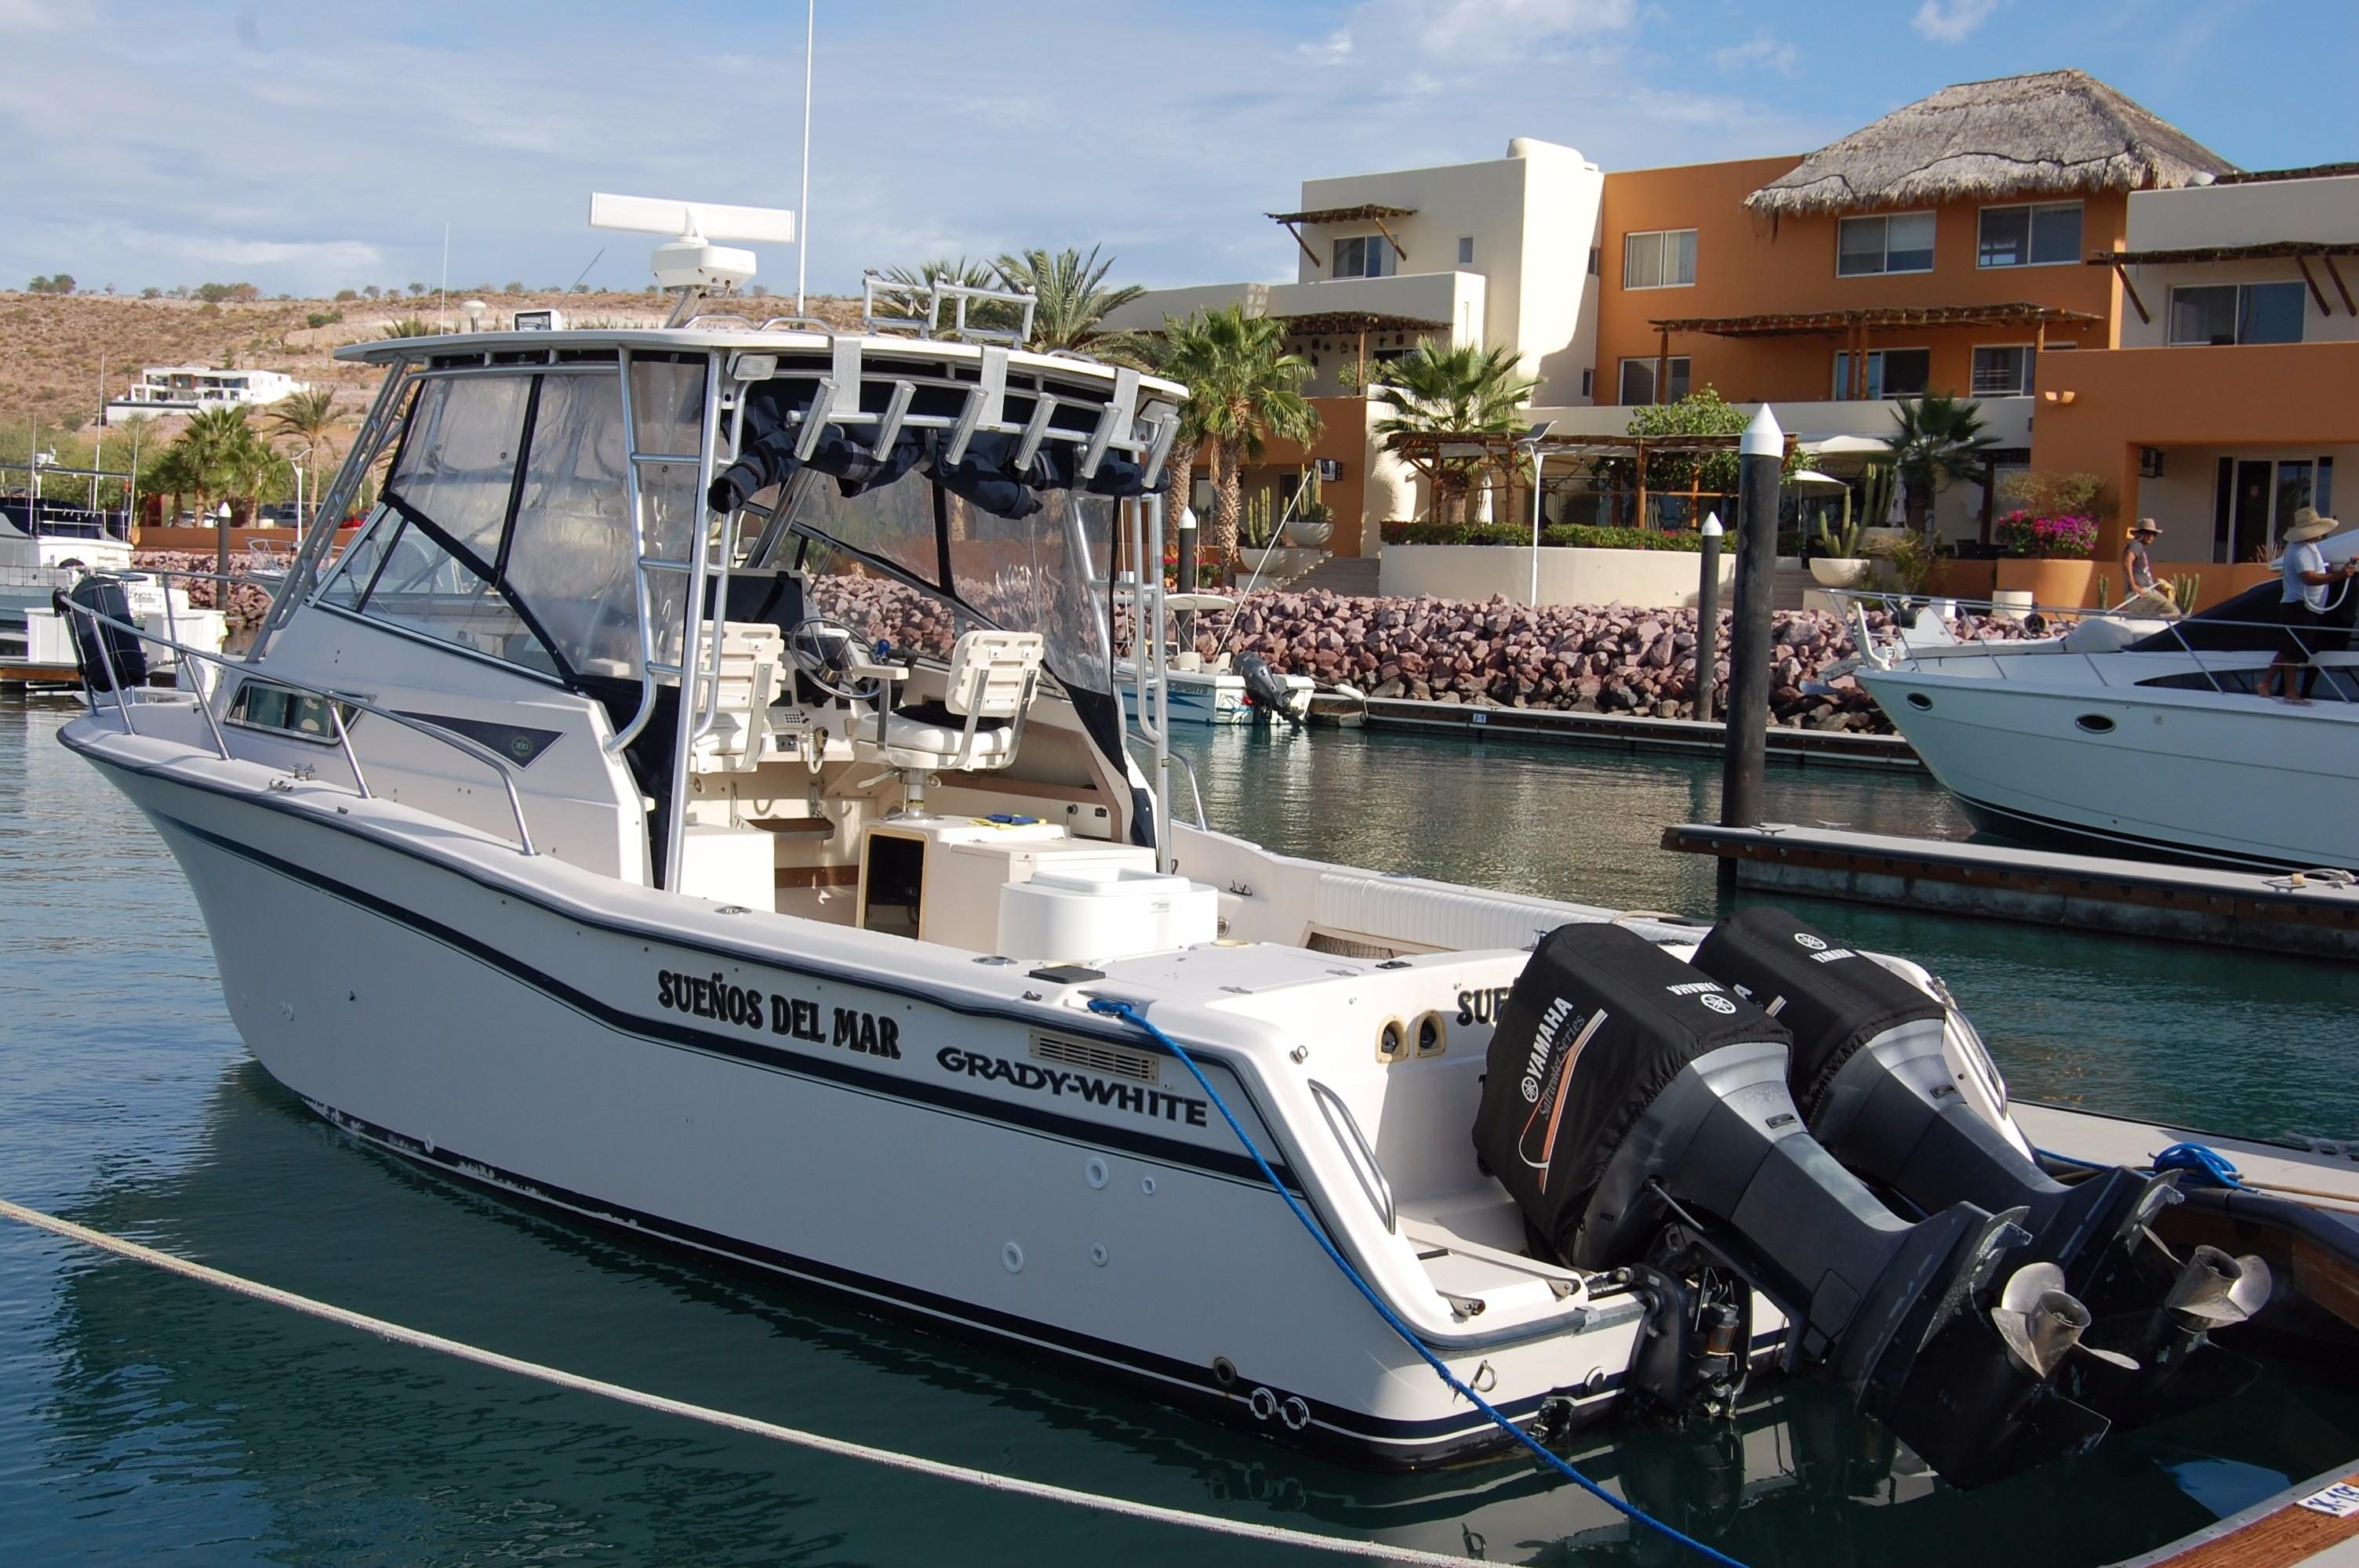 grady-white 300 marlin boats for sale